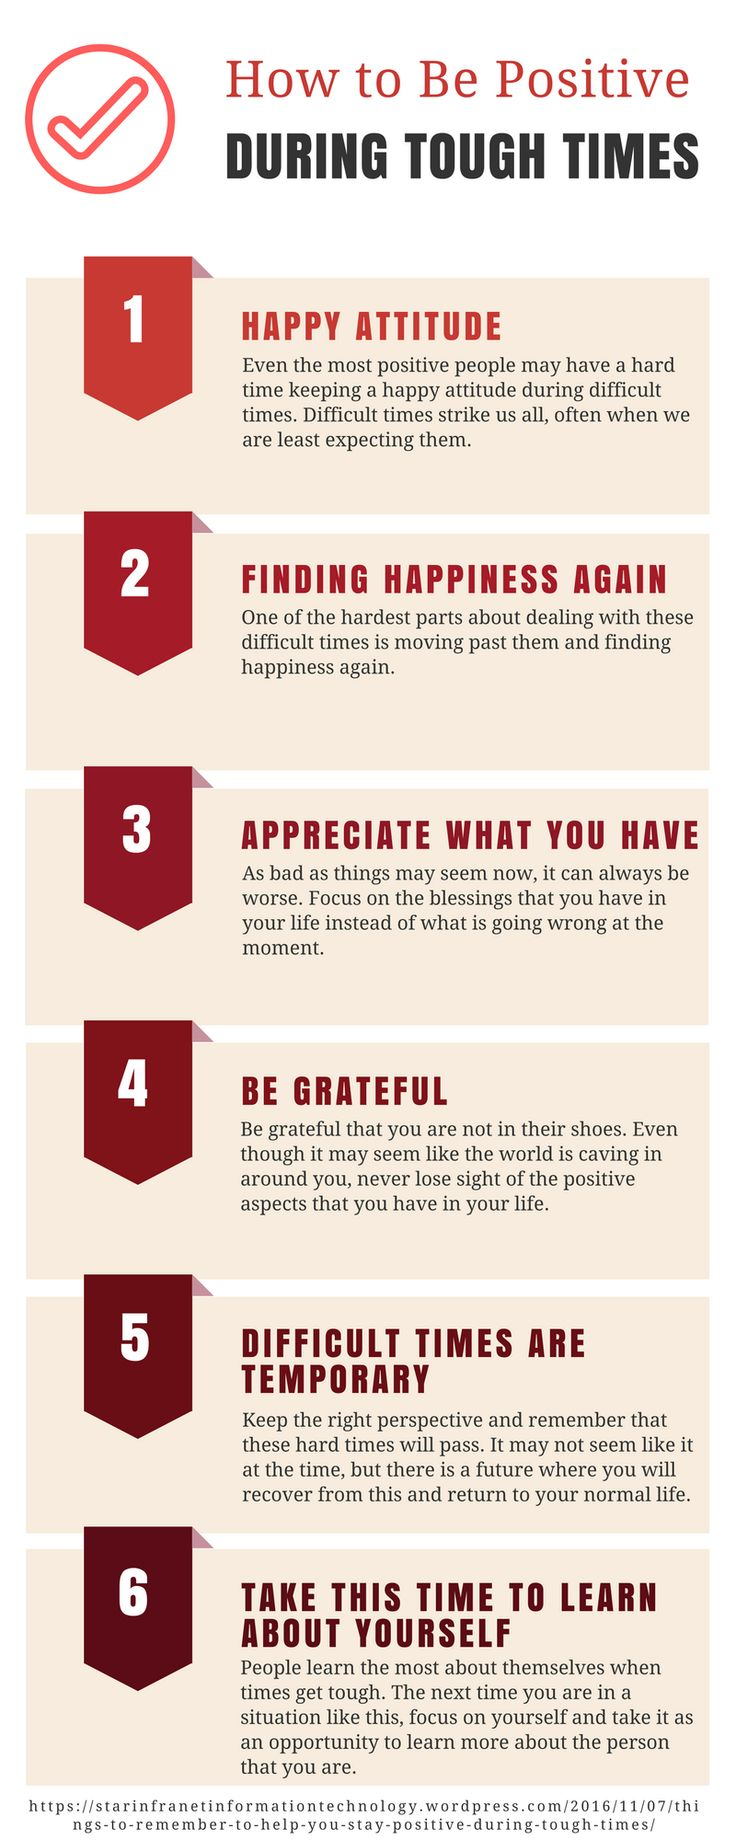 How to Be Positive During Tough Times - Even the most positive people may have a hard time keeping a happy attitude during difficult times. The most effective way of doing this is to find ways to stay positive during these tough times. Below,  some tips that will help you stay positive during the most difficult times.    1. Appreciate What You Have  2. Difficult Times Are Temporary  3. Take This Time To Learn About Yourself